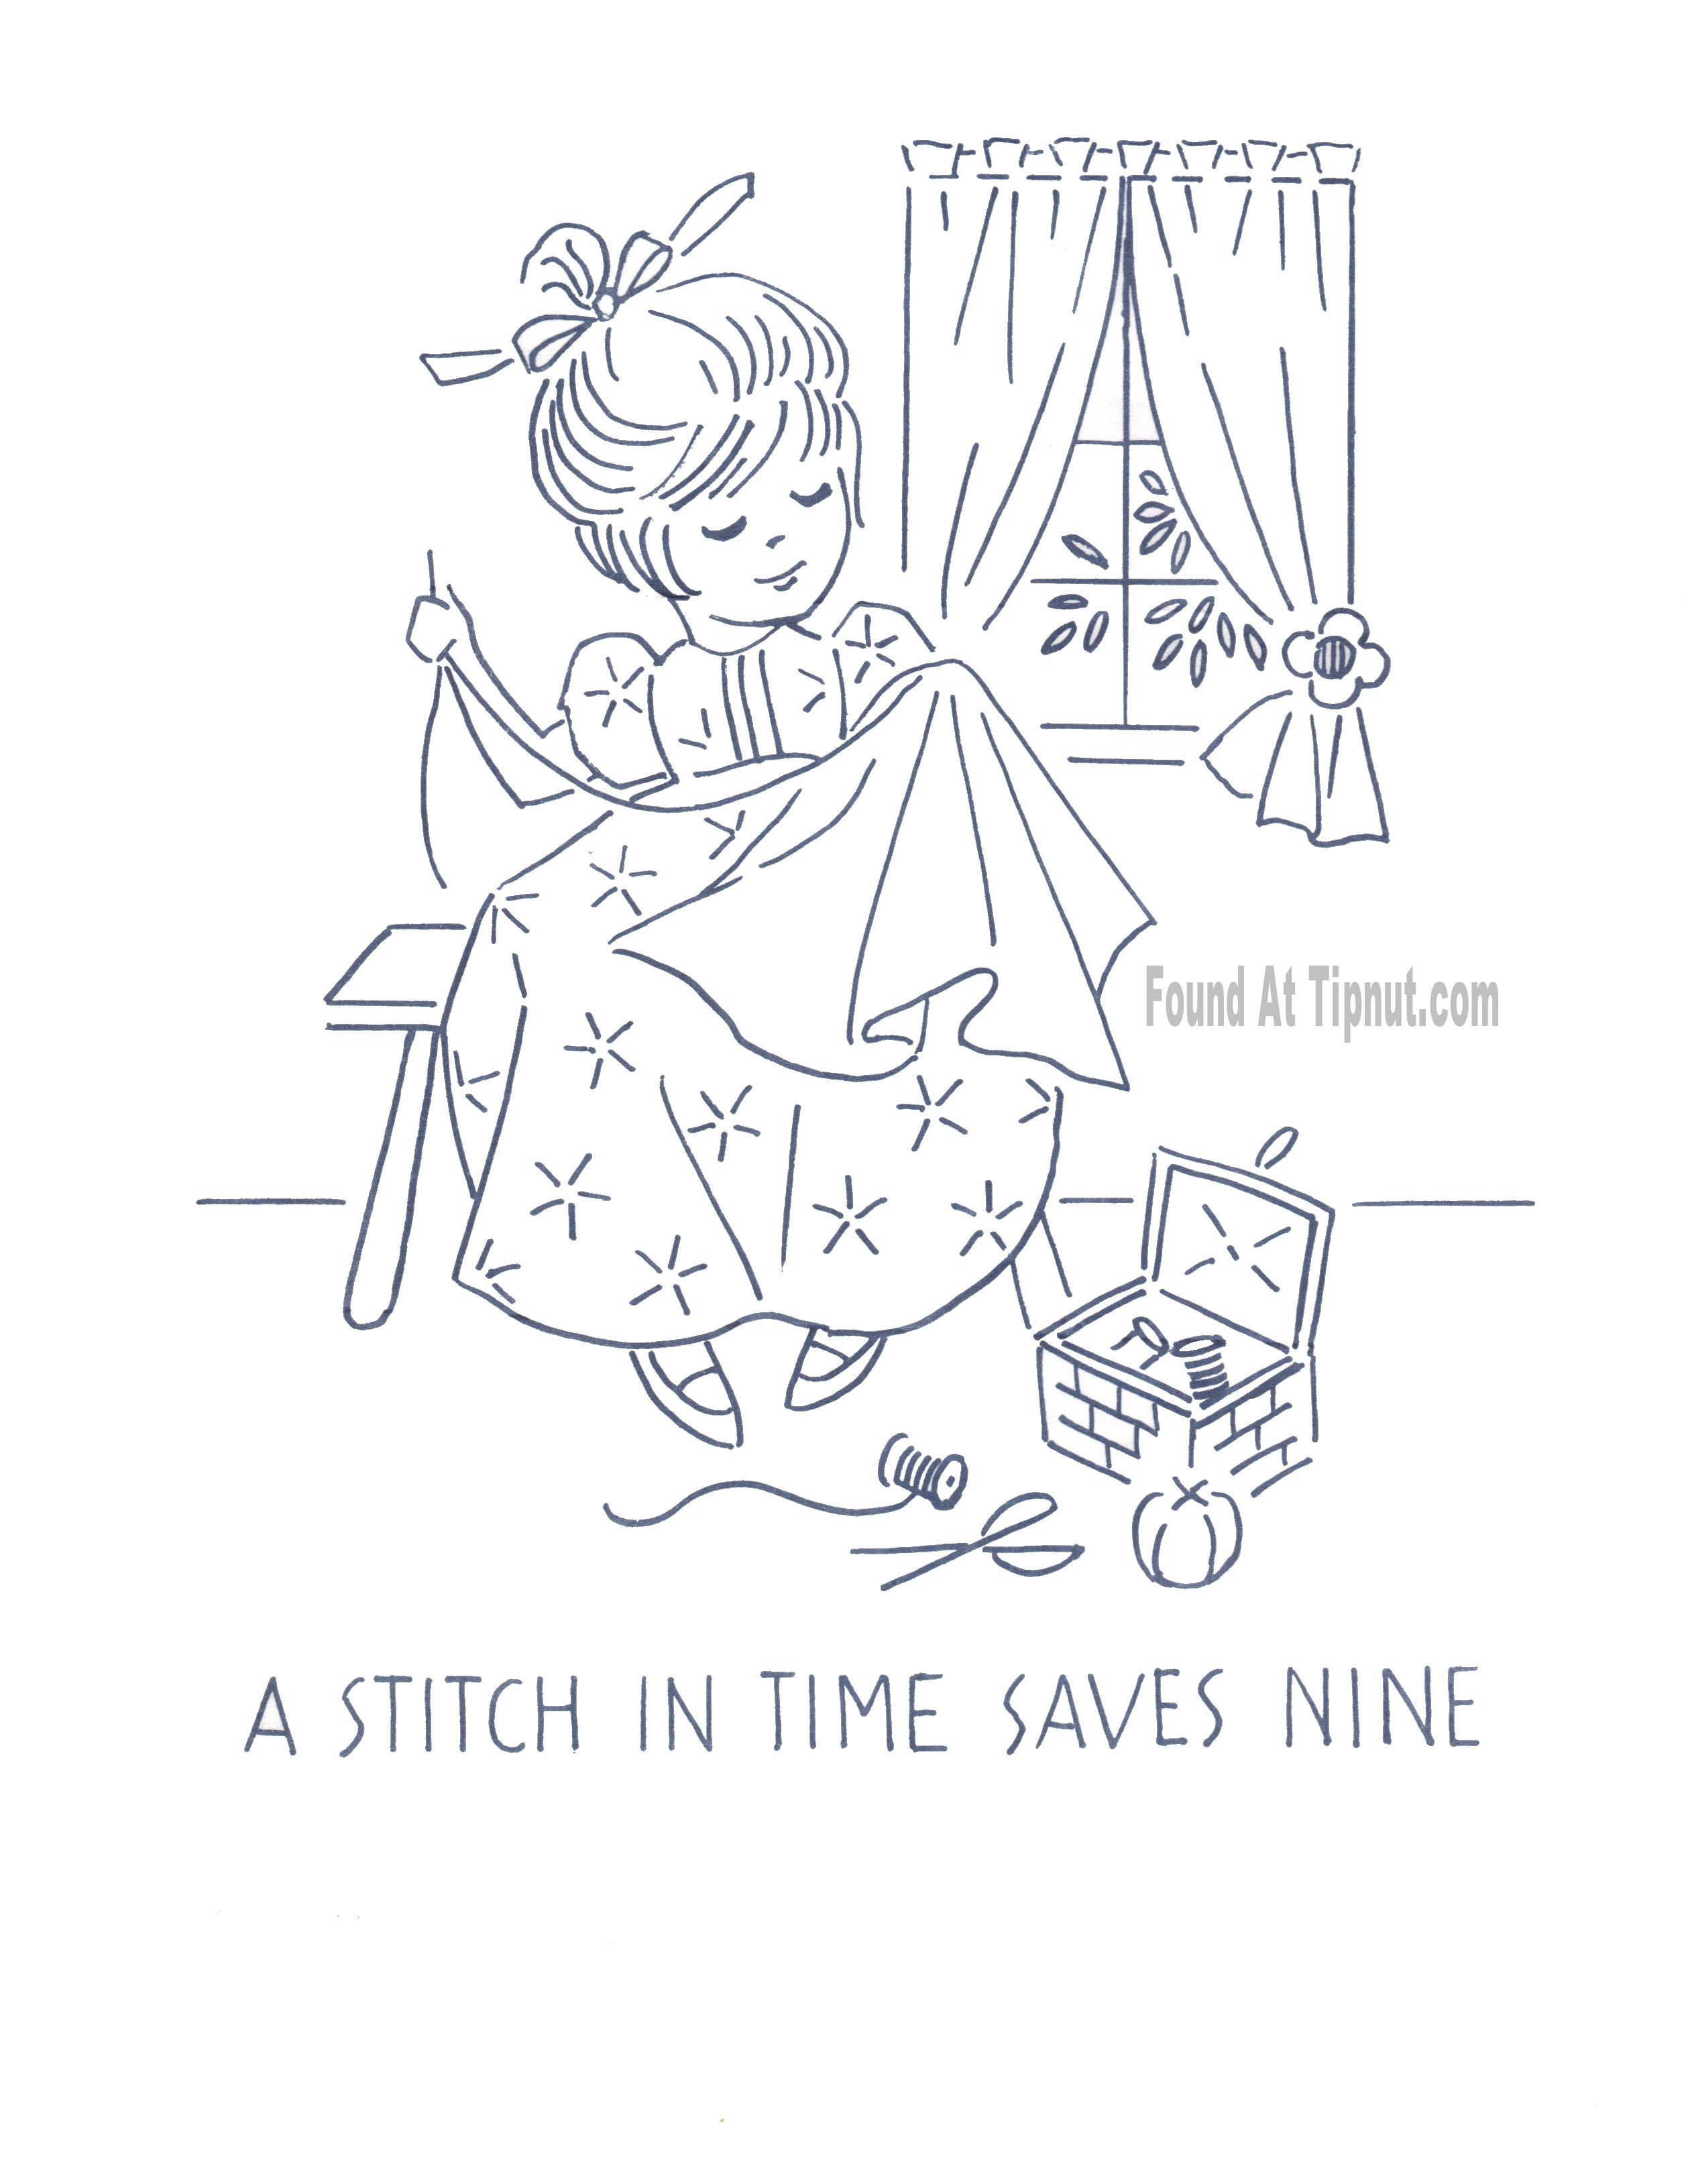 Kitchen Proverbs Embroidery Patterns U2013 Complete Set : TipNut.com